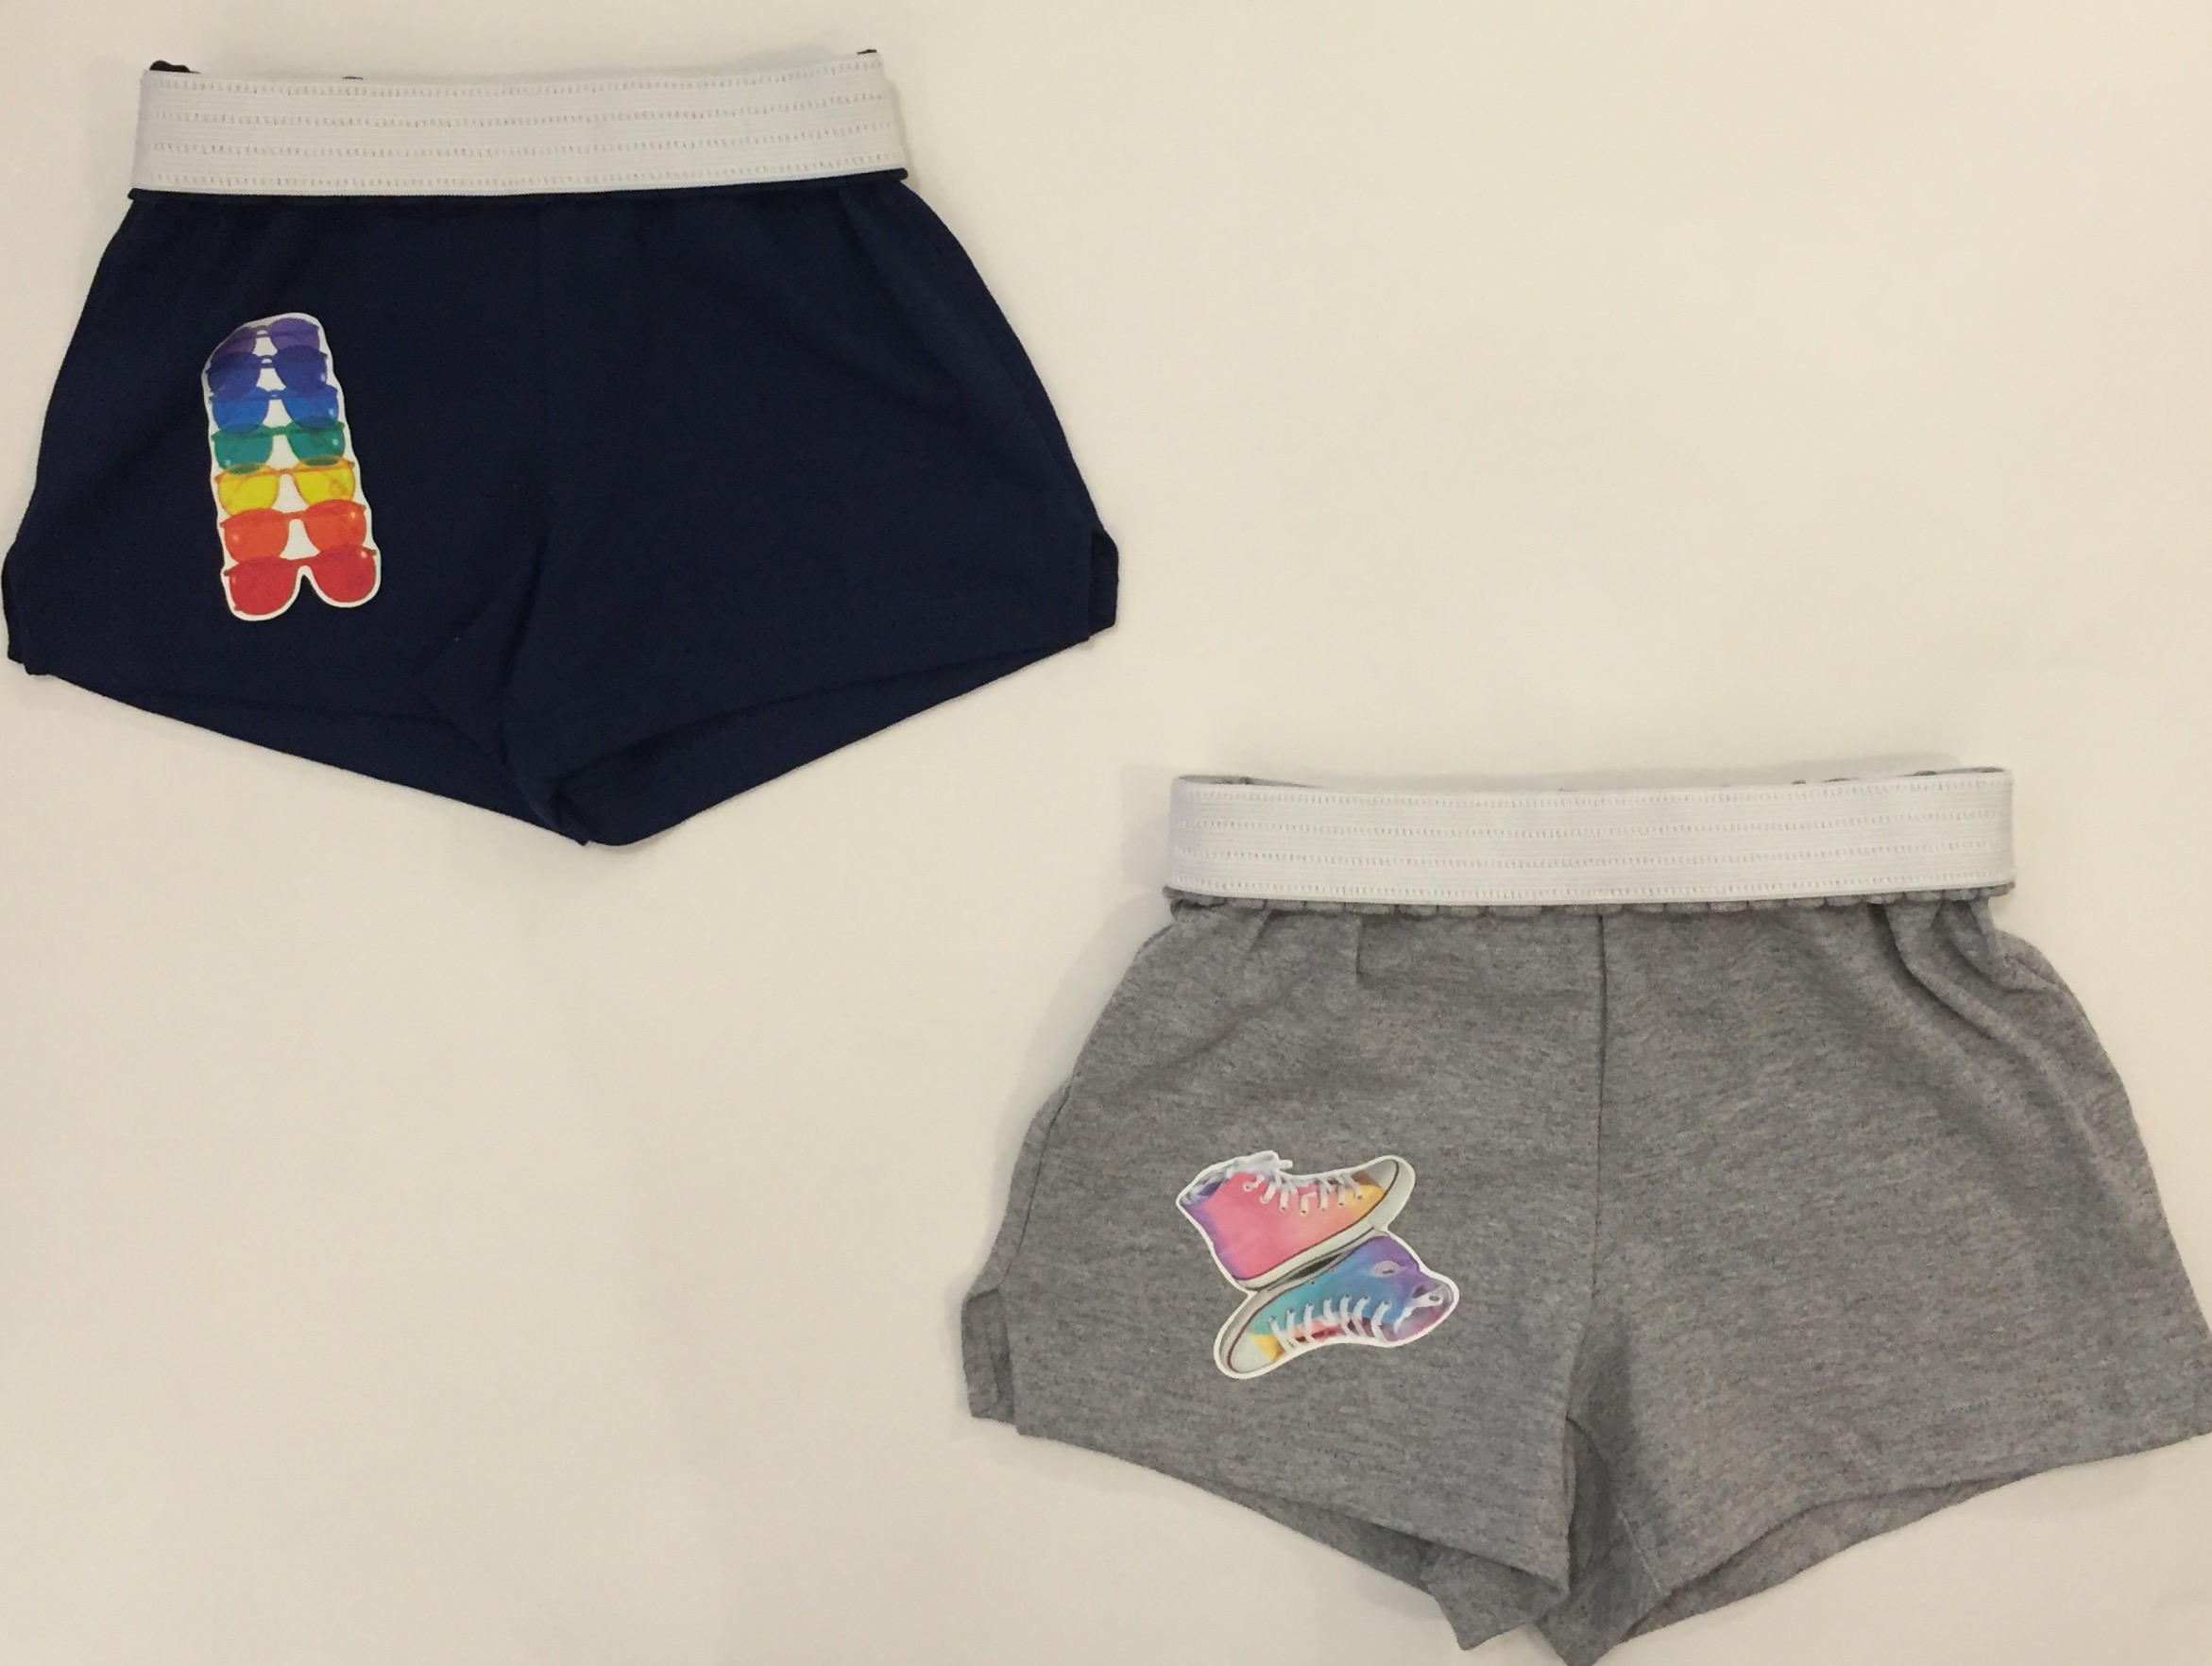 These cotton shorts with fun patches are perfect for summer camp and relaxed summer days